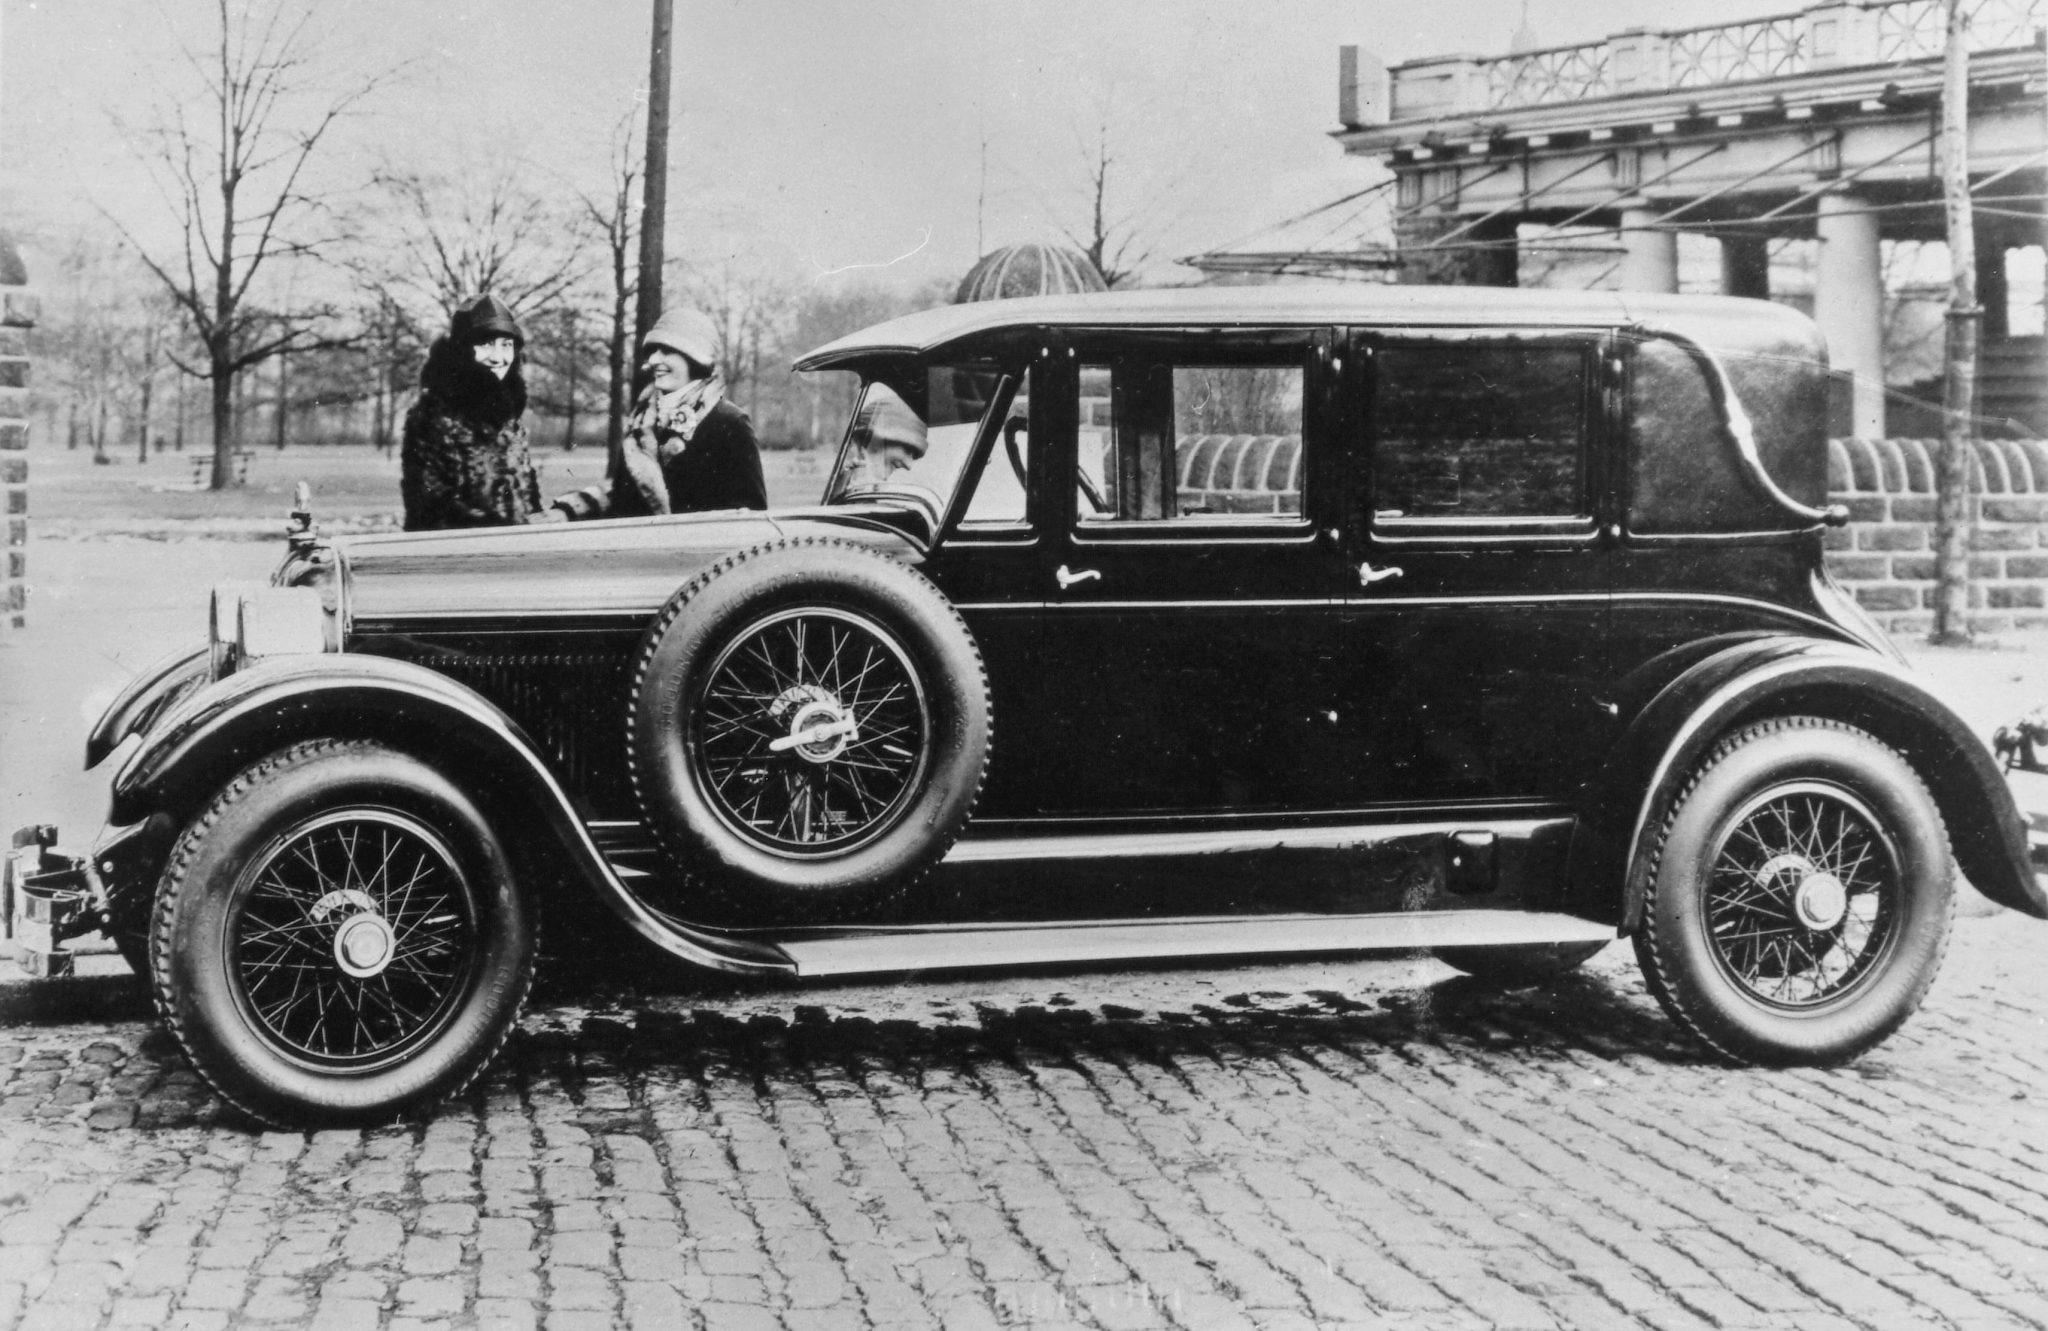 One of the more unusual body designs for the Duesenberg chassis was this limousine built by the firm of Charles Schutte in 1922. The interior featured upholstered furniture with wooden armrests. It truly was a living room on wheels.